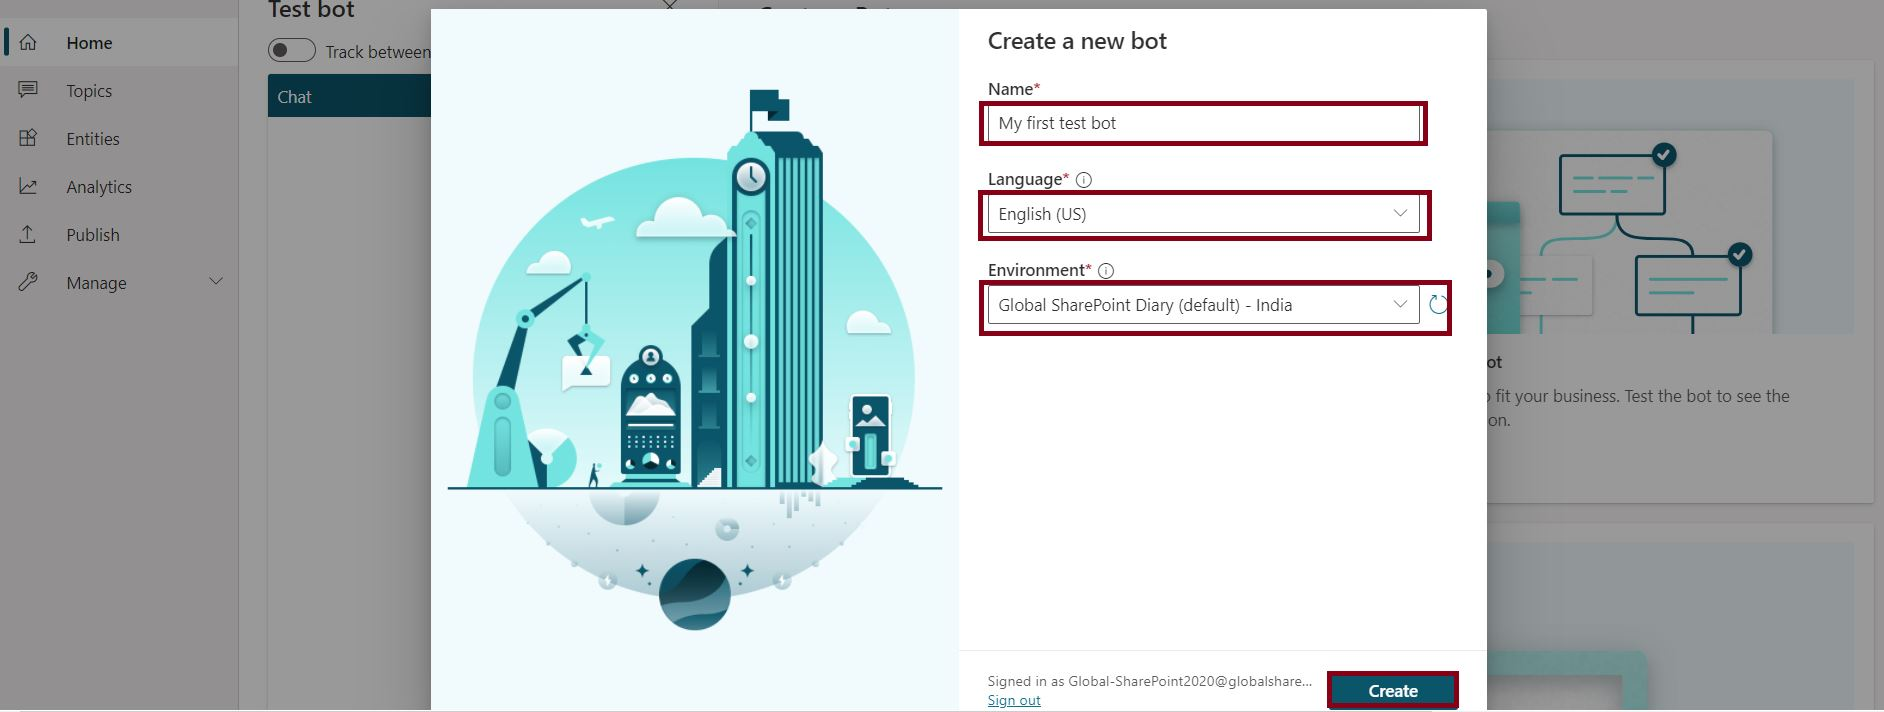 Create a new bot in Power Virtual Agents - PowerApps